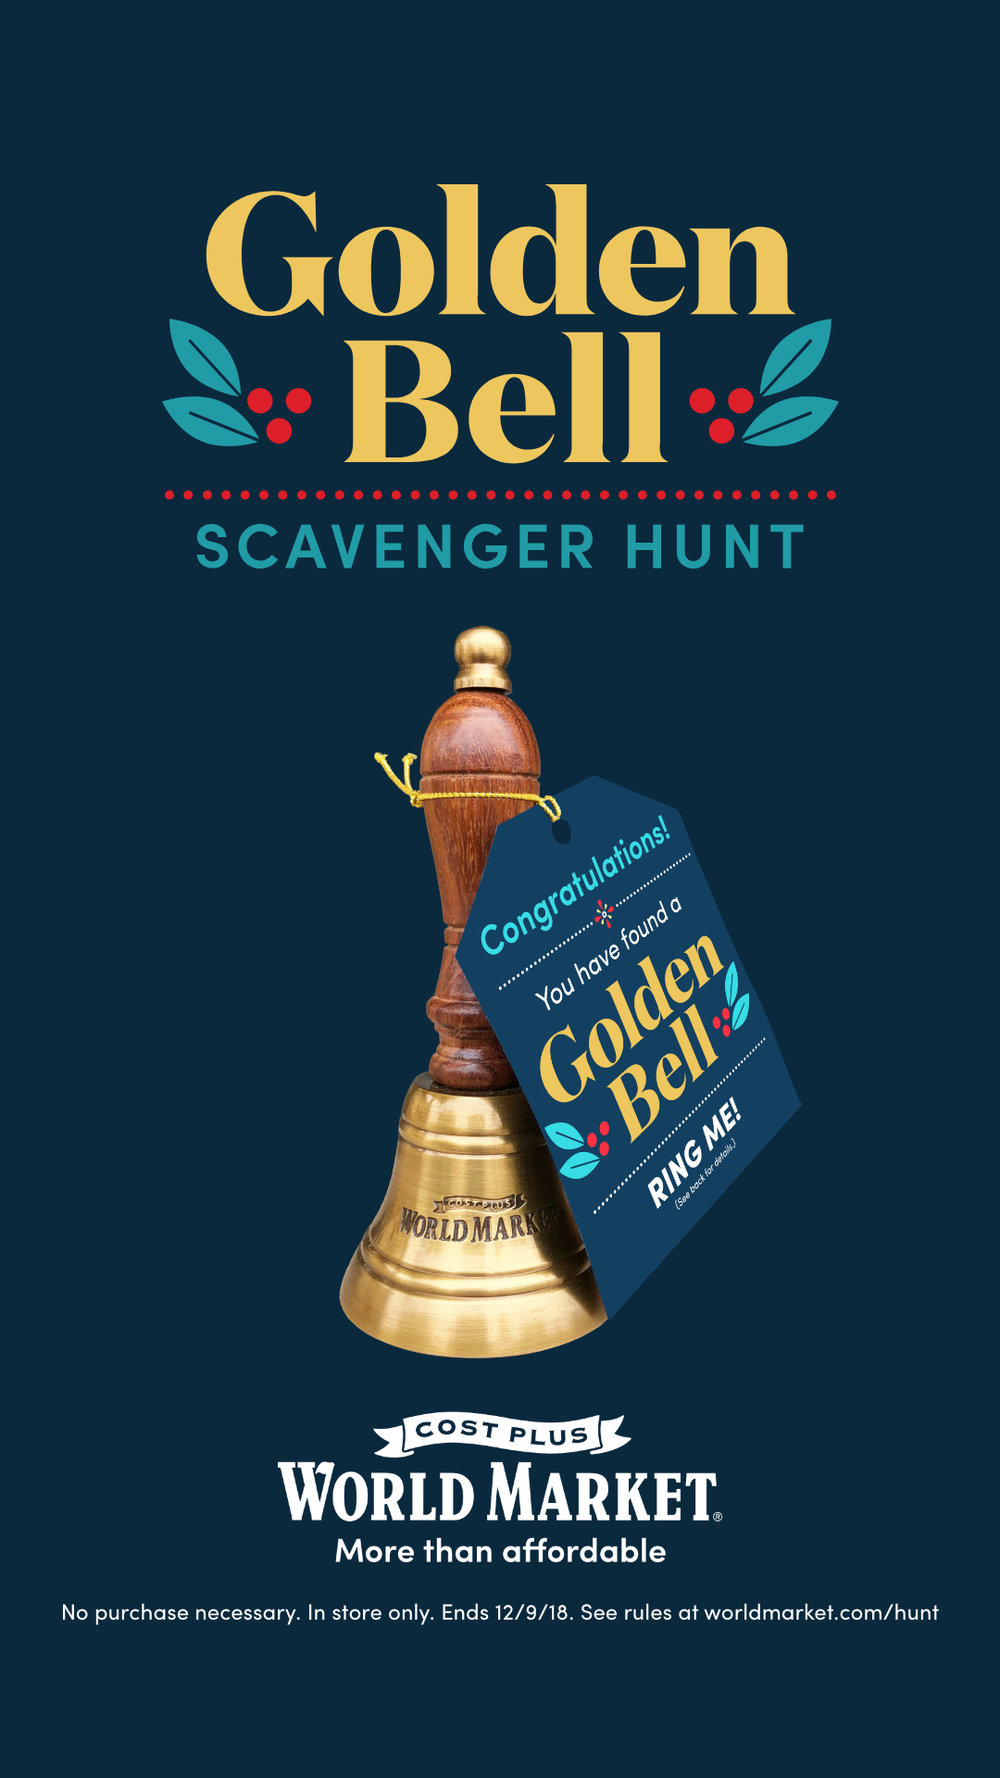 Golden Bell Scavenger Hunt at Cost Plus World Market